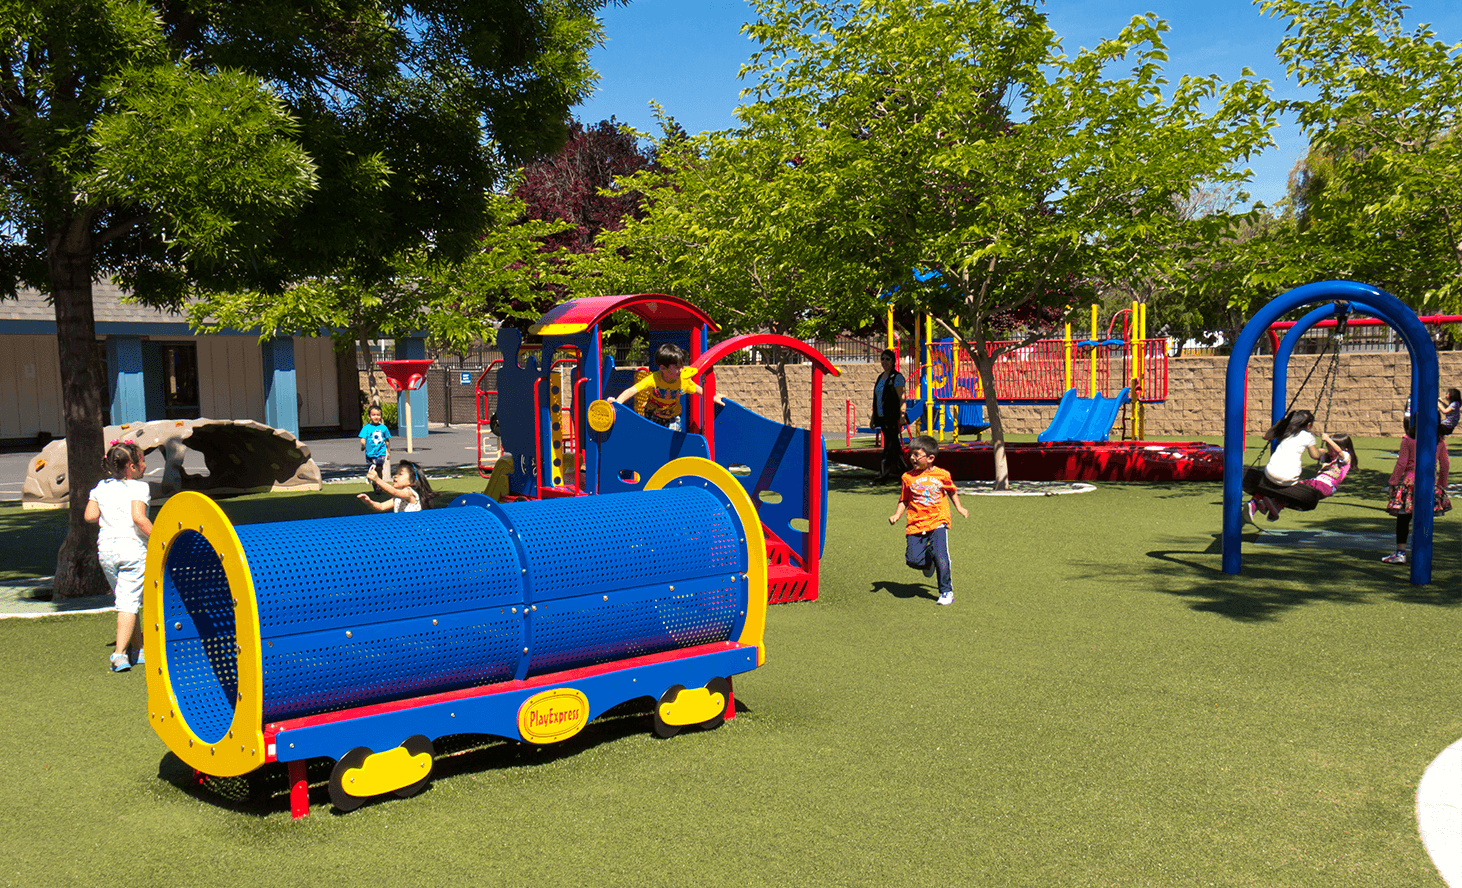 Playground | Challenger School - Shawnee | Private School In San Jose, California